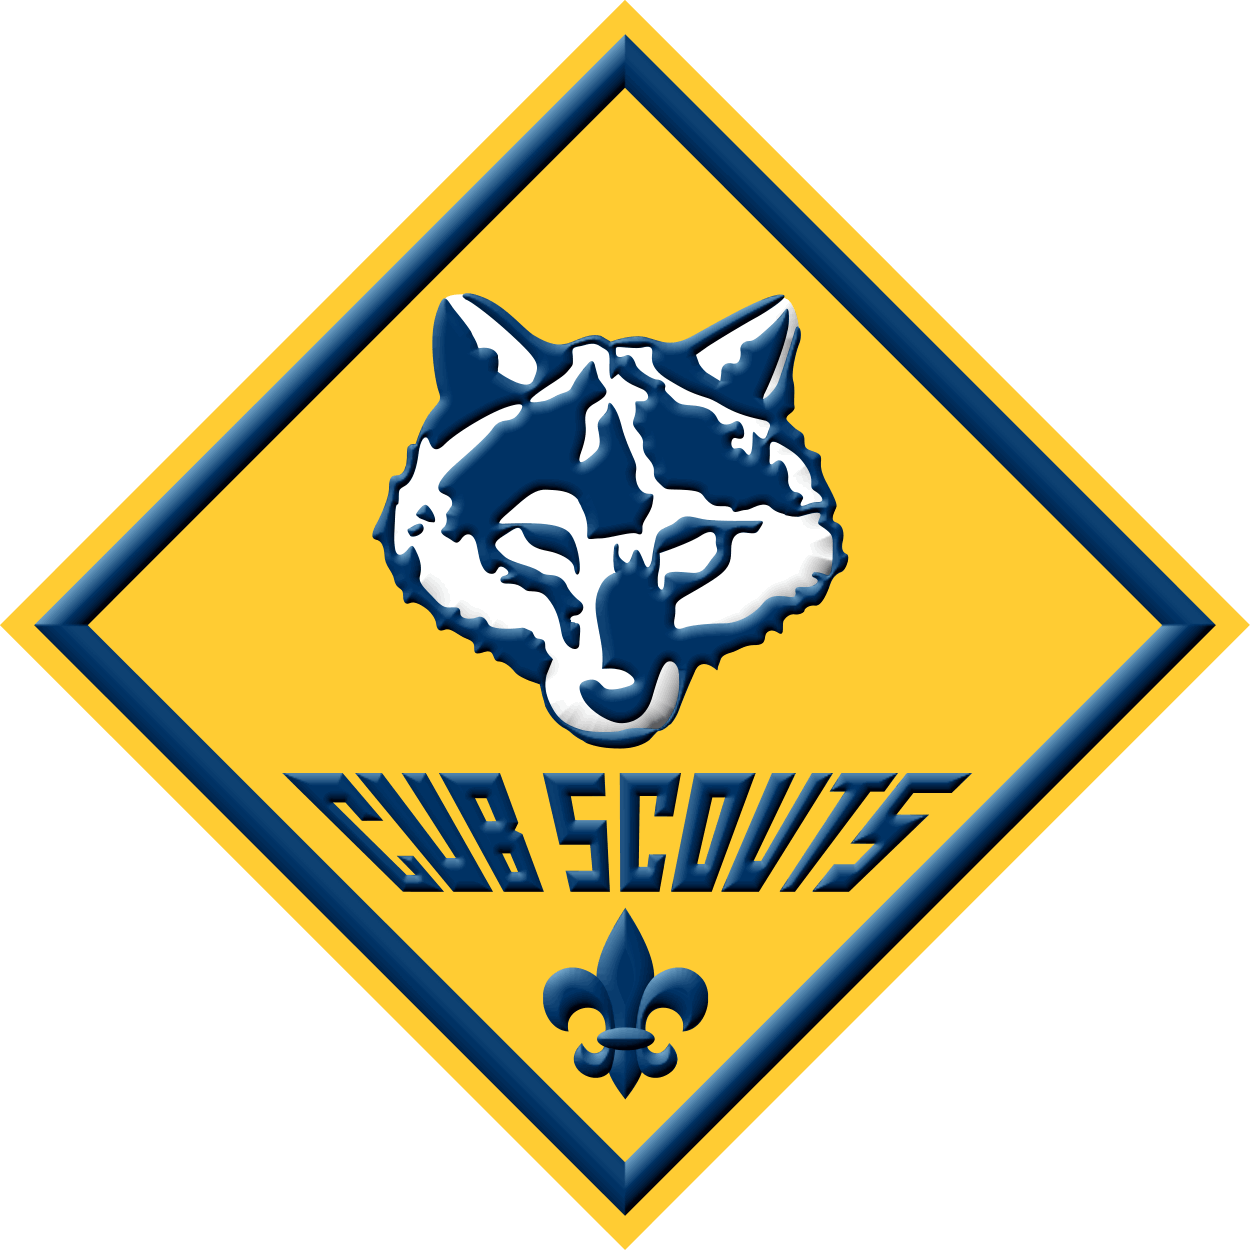 cub scout wolf patch.